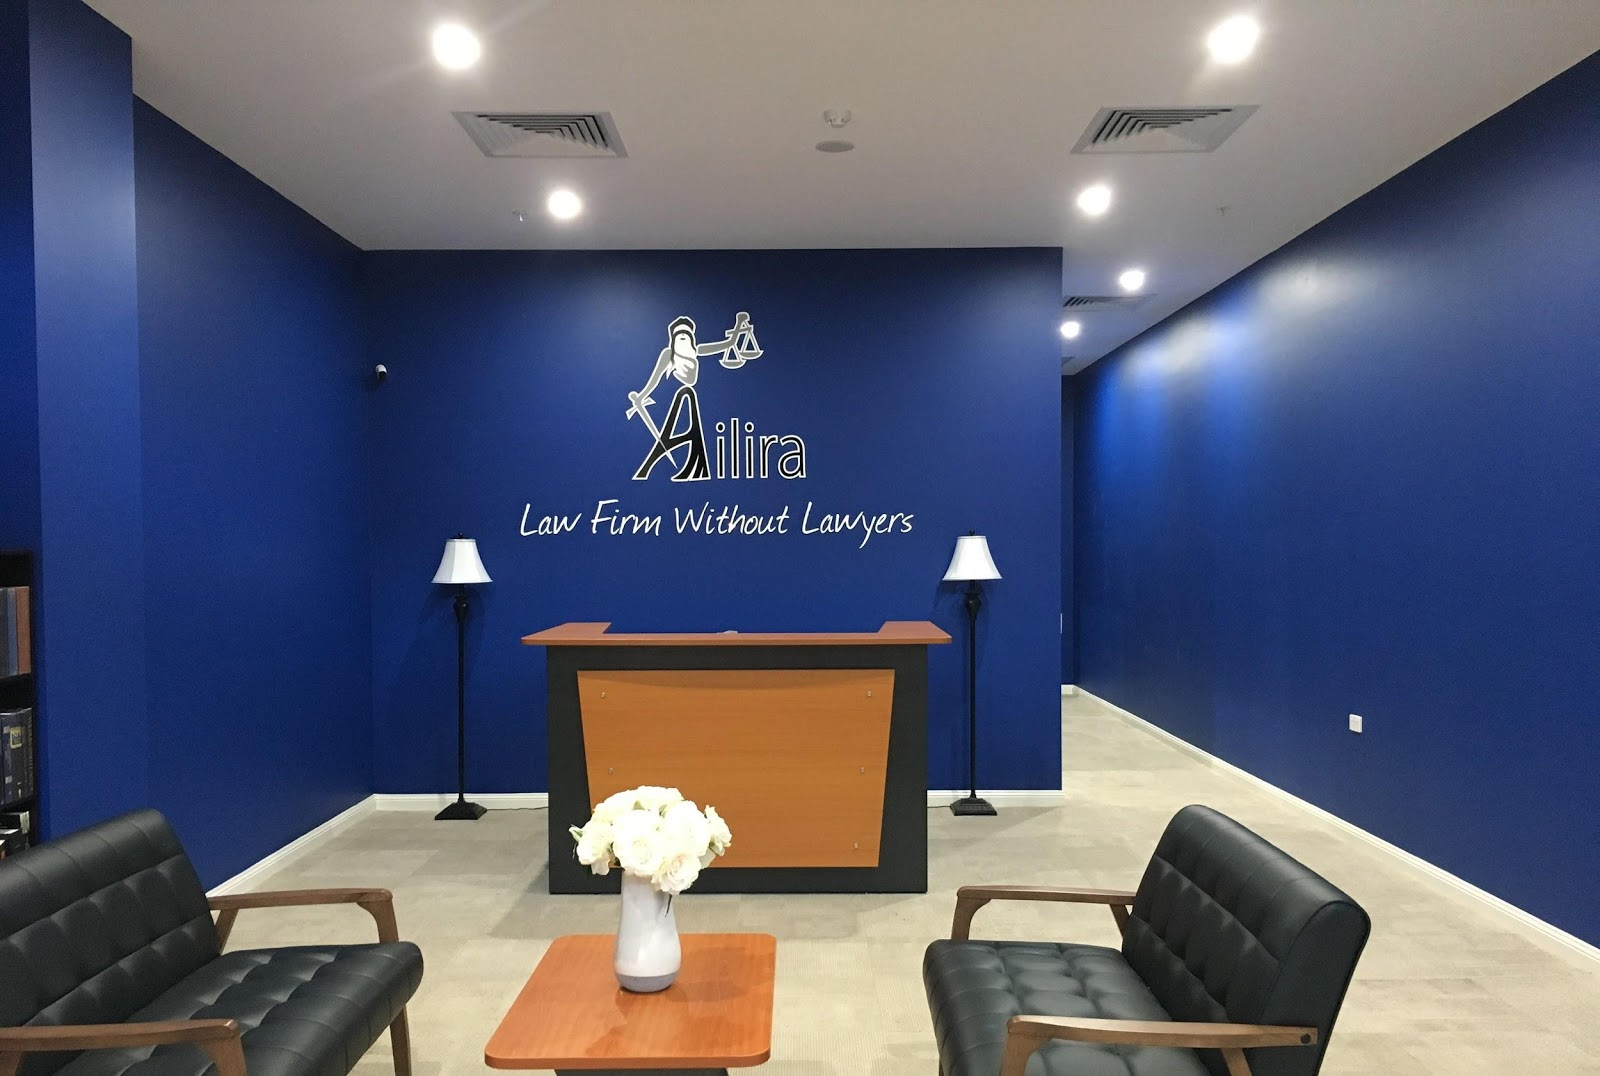 law firm without lawyers